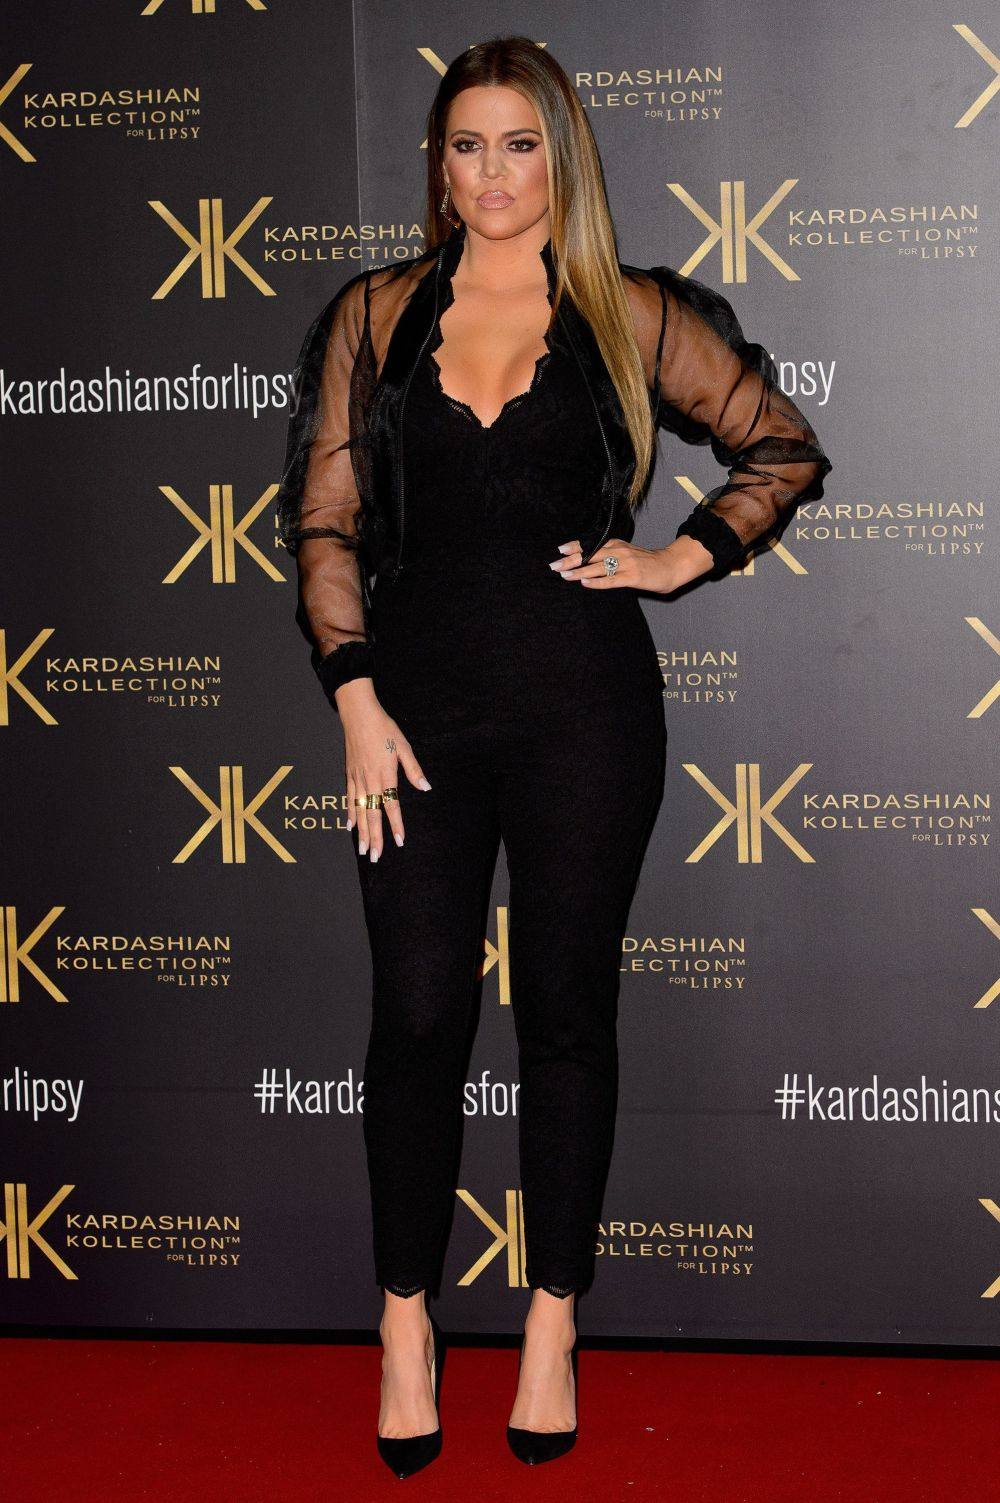 At thelaunch party for the Kardashian Kollection for Lipsy at the Natural History Museum in London.